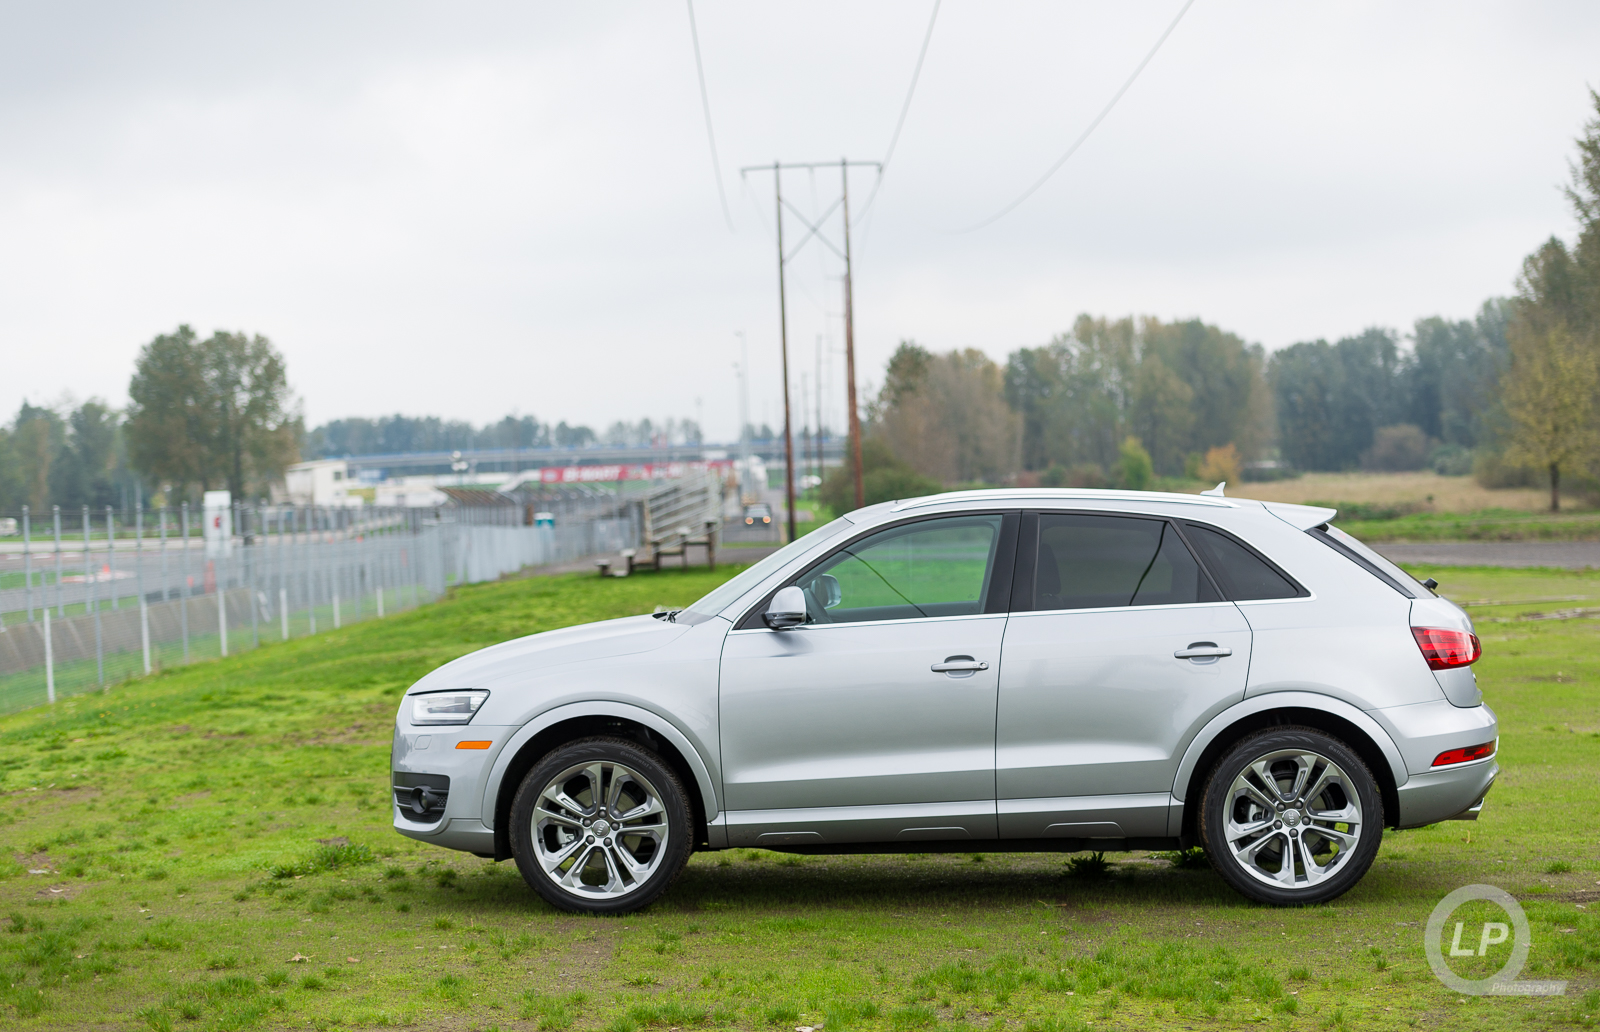 Audi Q3 parked next to the track at PIR